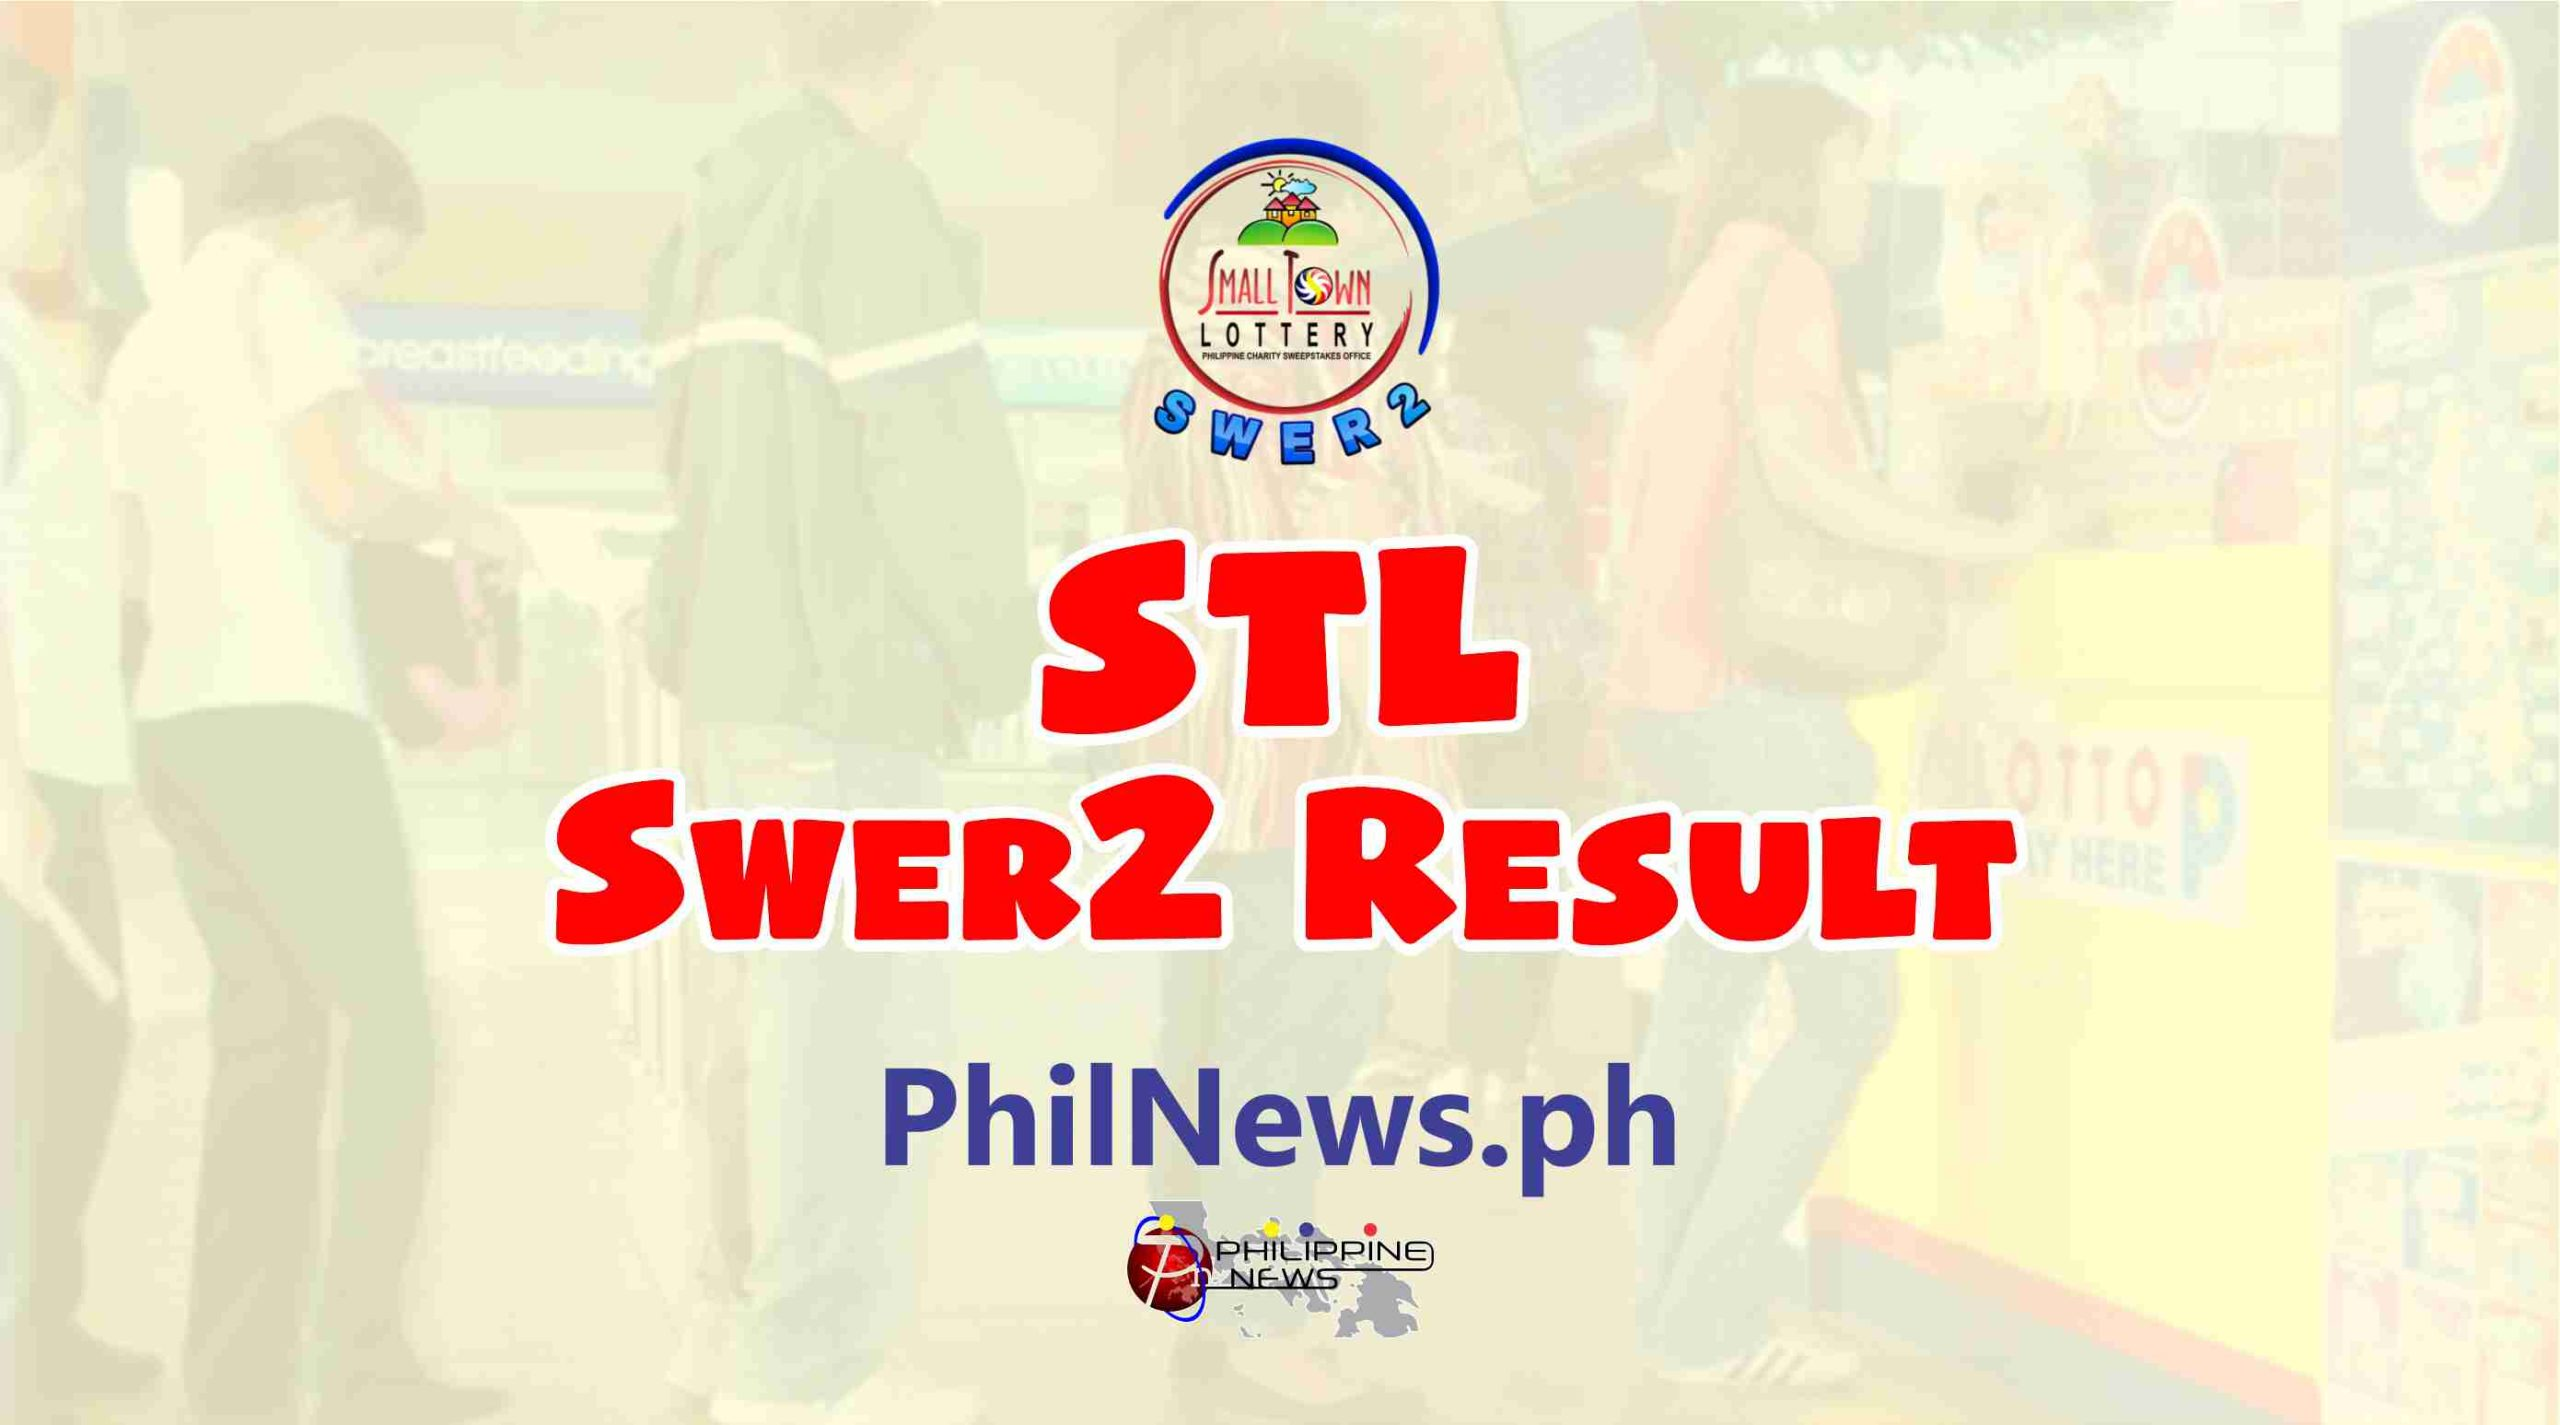 STL Swer2 Lotto Result